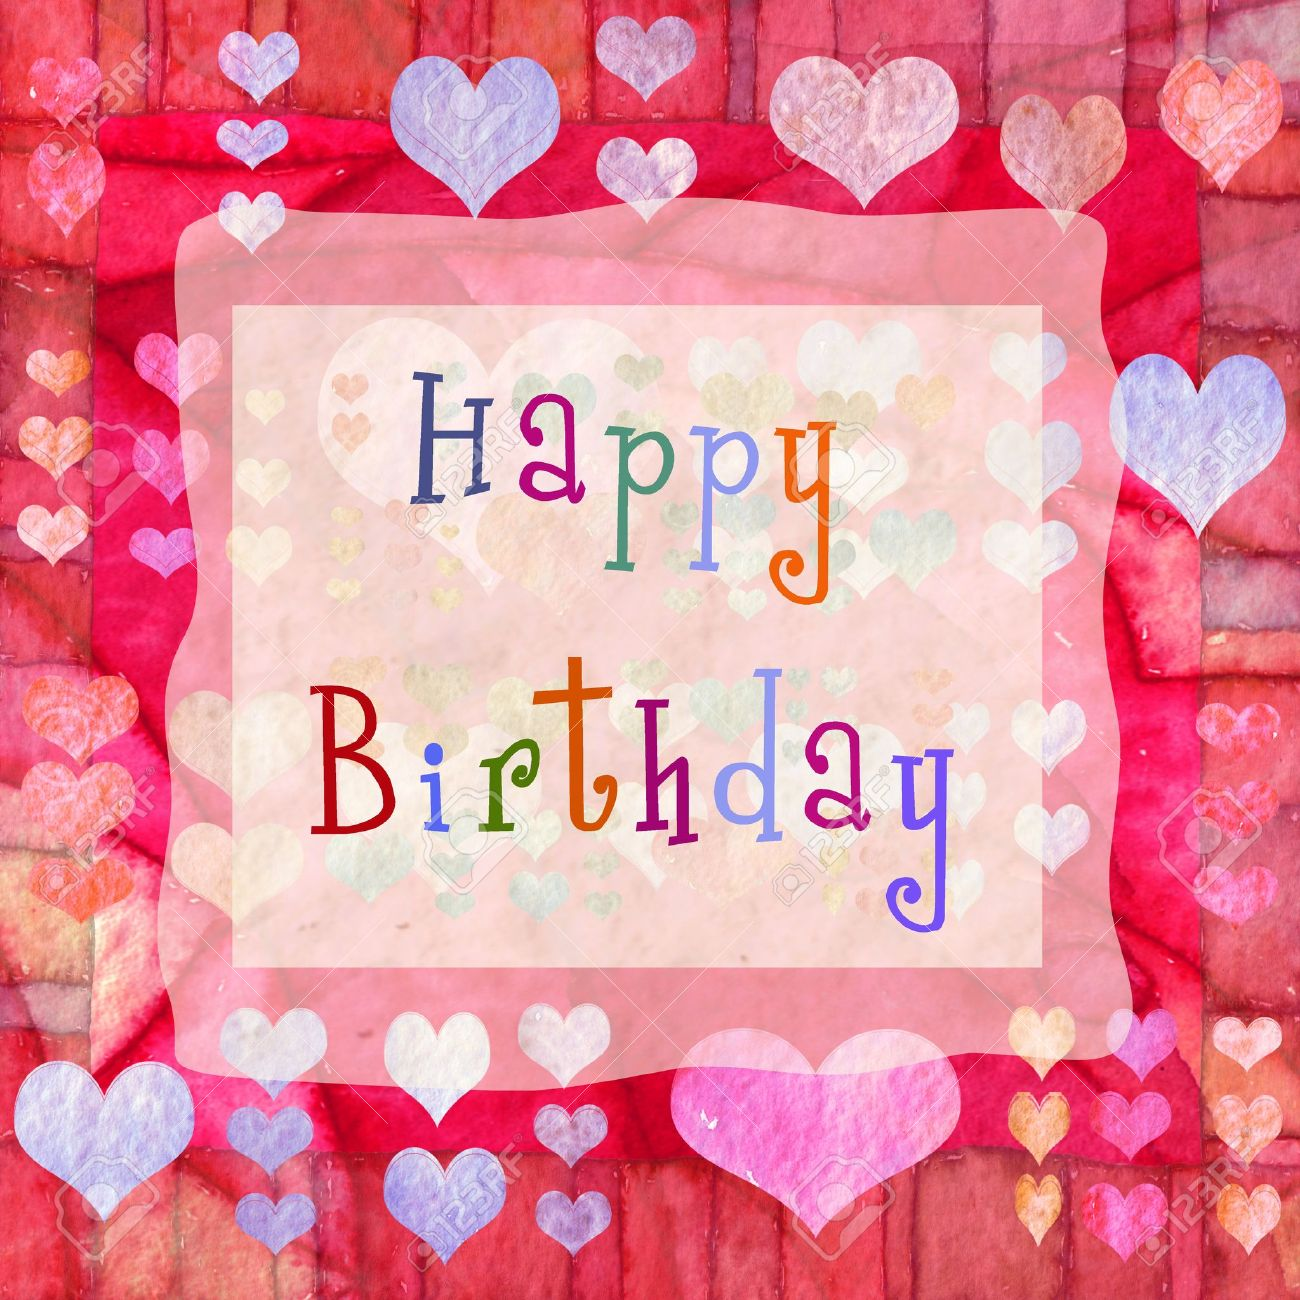 Happy Birthday Background With Hearts Stock Photo Picture And